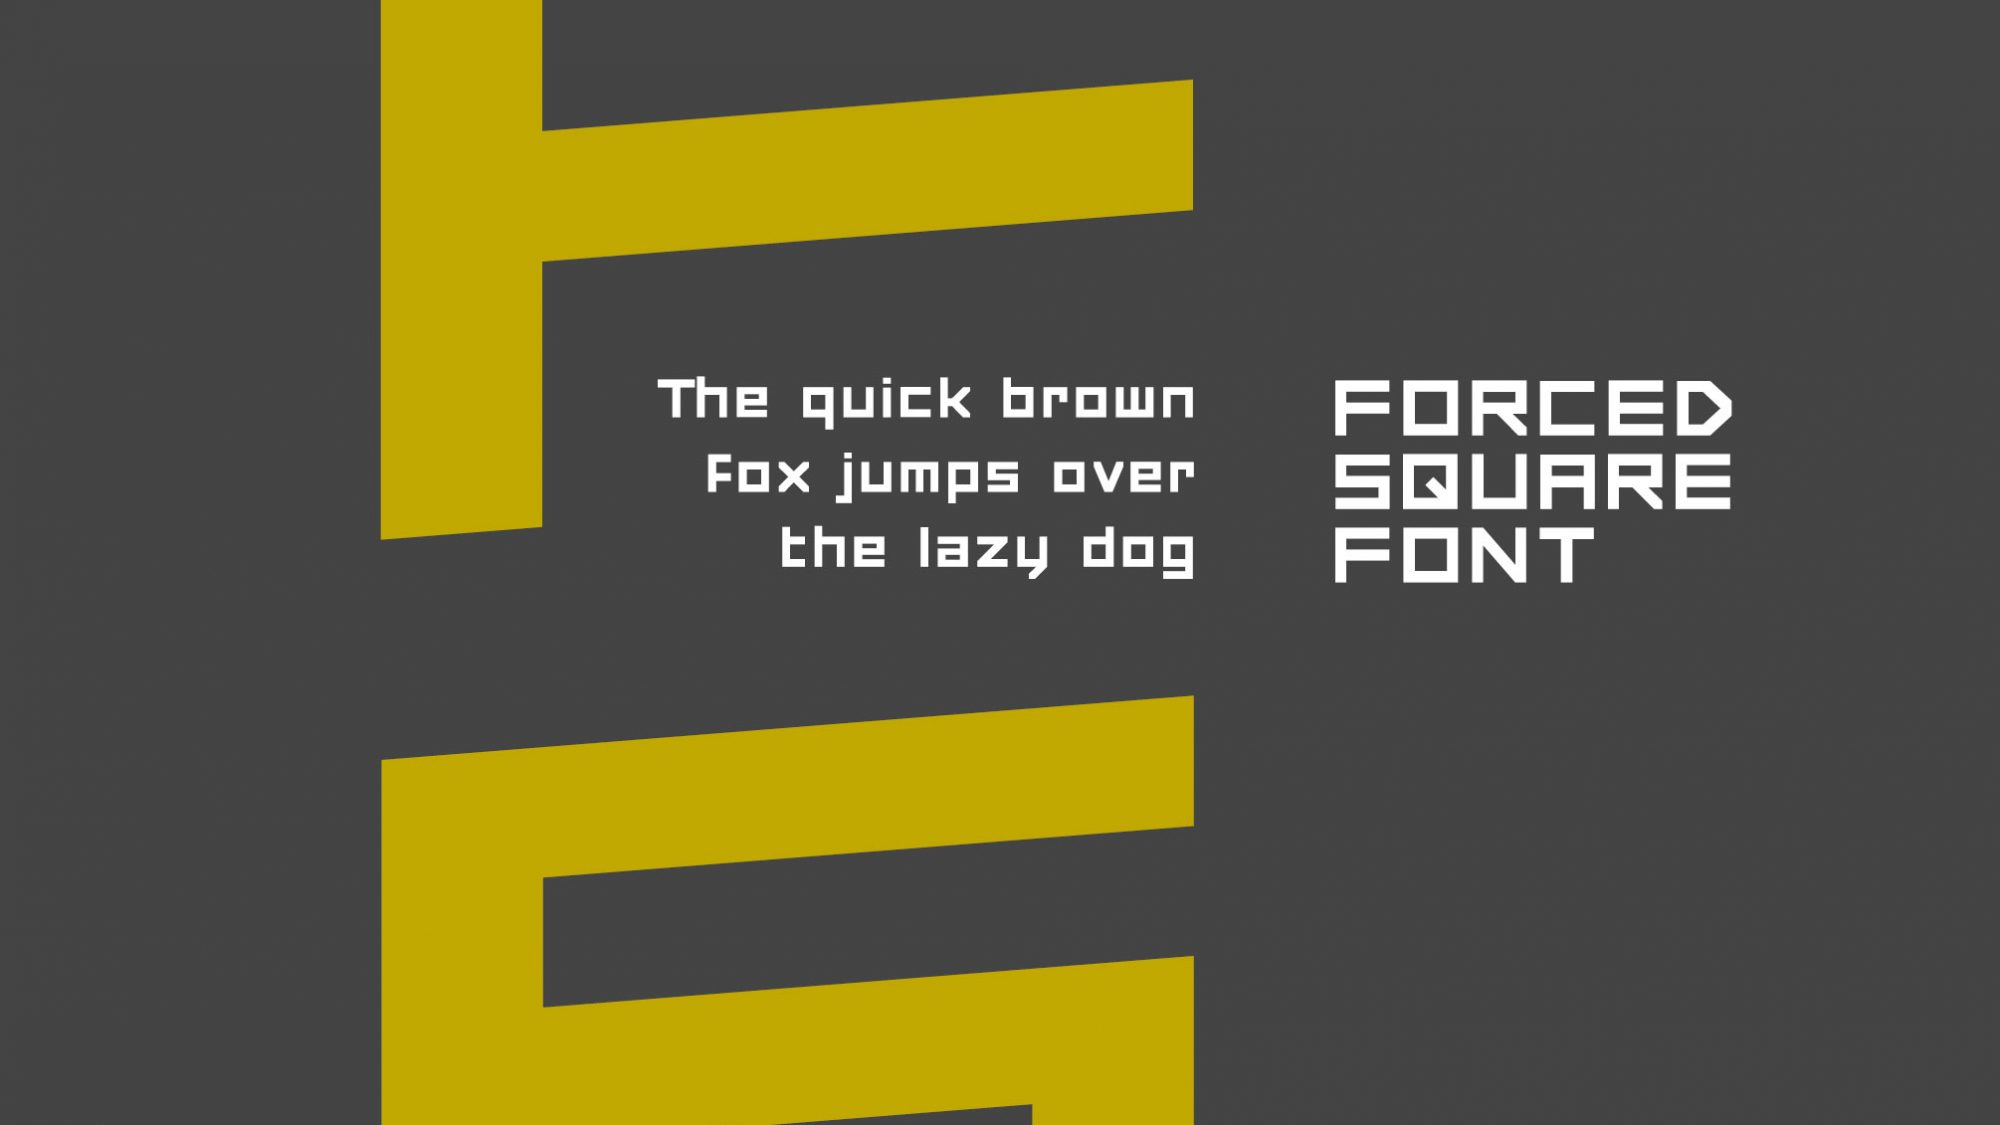 Dafont Free Download Forced Square Techno Font Drawperfect